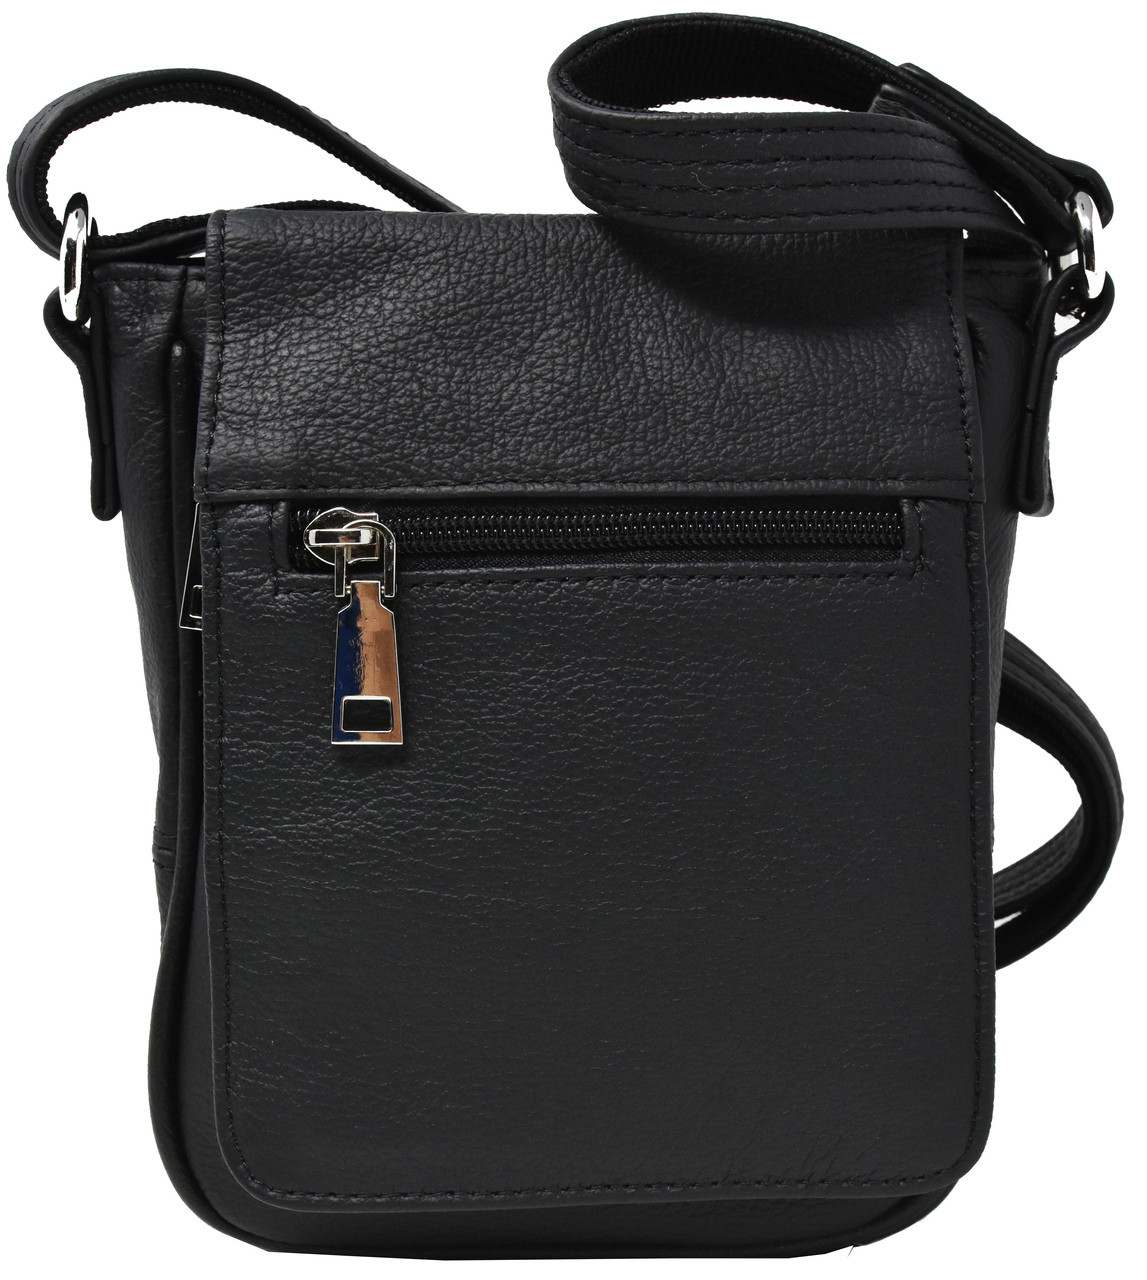 Garrison Grip CCW Attractive Cowhide Black Leather Compact Concealment Purse With YKK Locking Compartment For Small Frame Semi-Auto 22 Cal 380 And 9mm Firearms